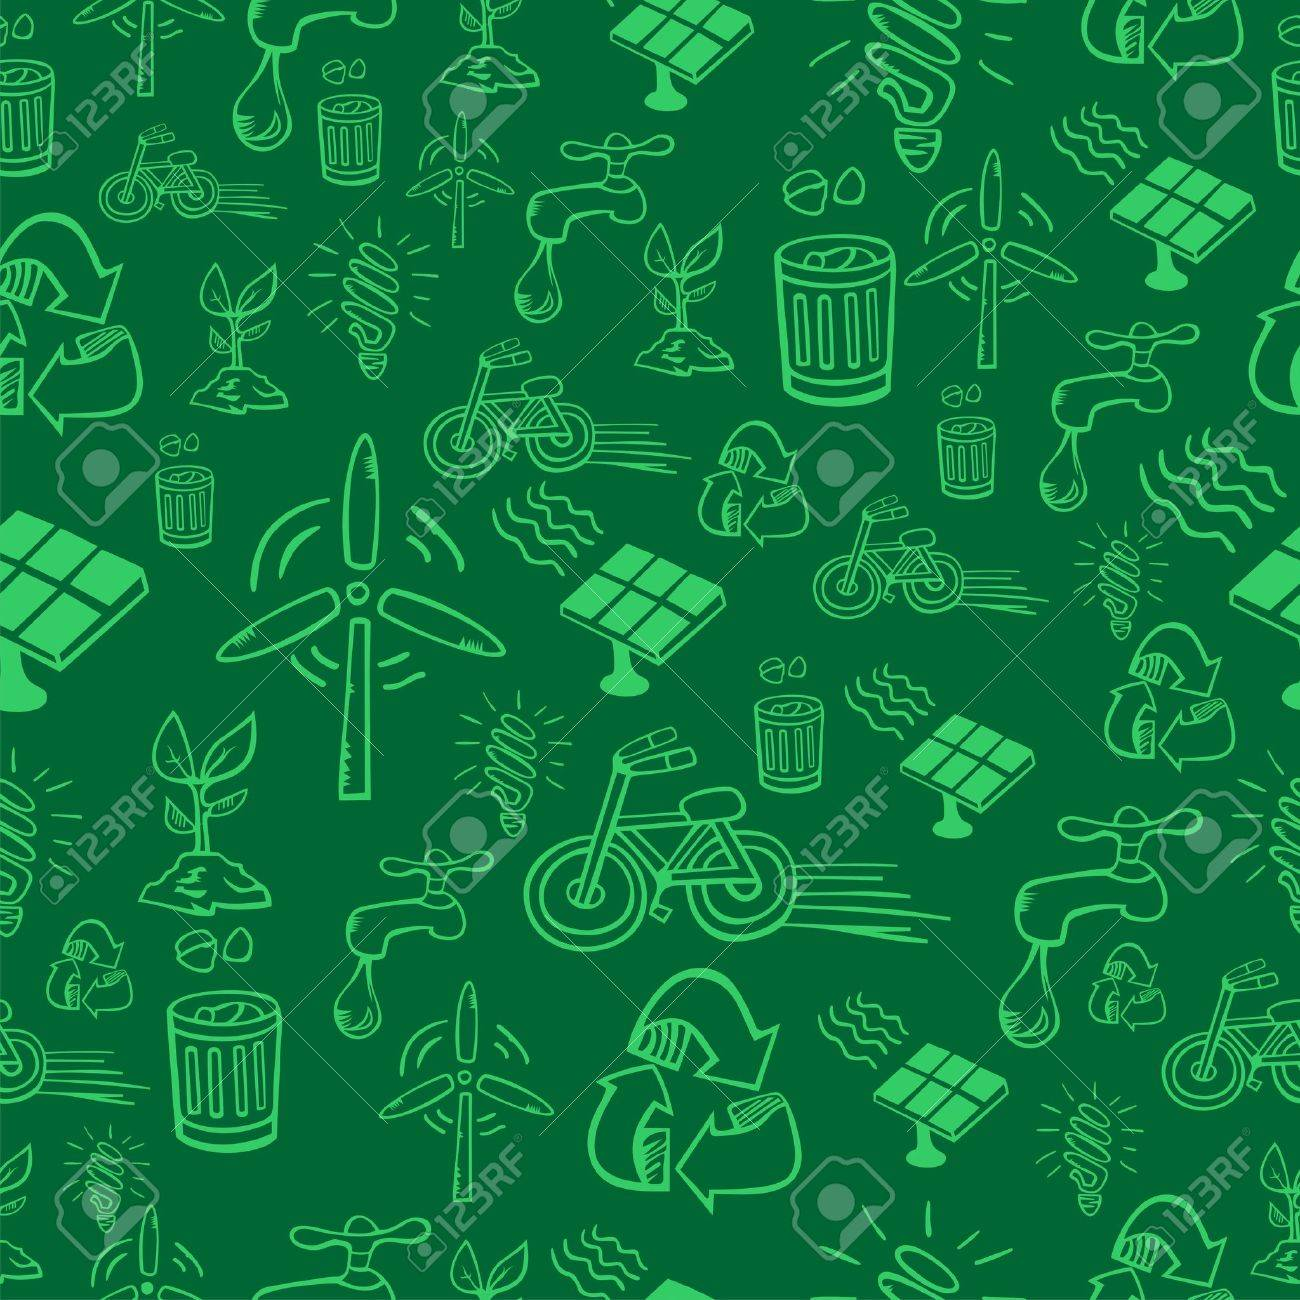 Go green icon set seamless pattern  file layered for easy manipulation and custom coloring Stock Vector - 14574517